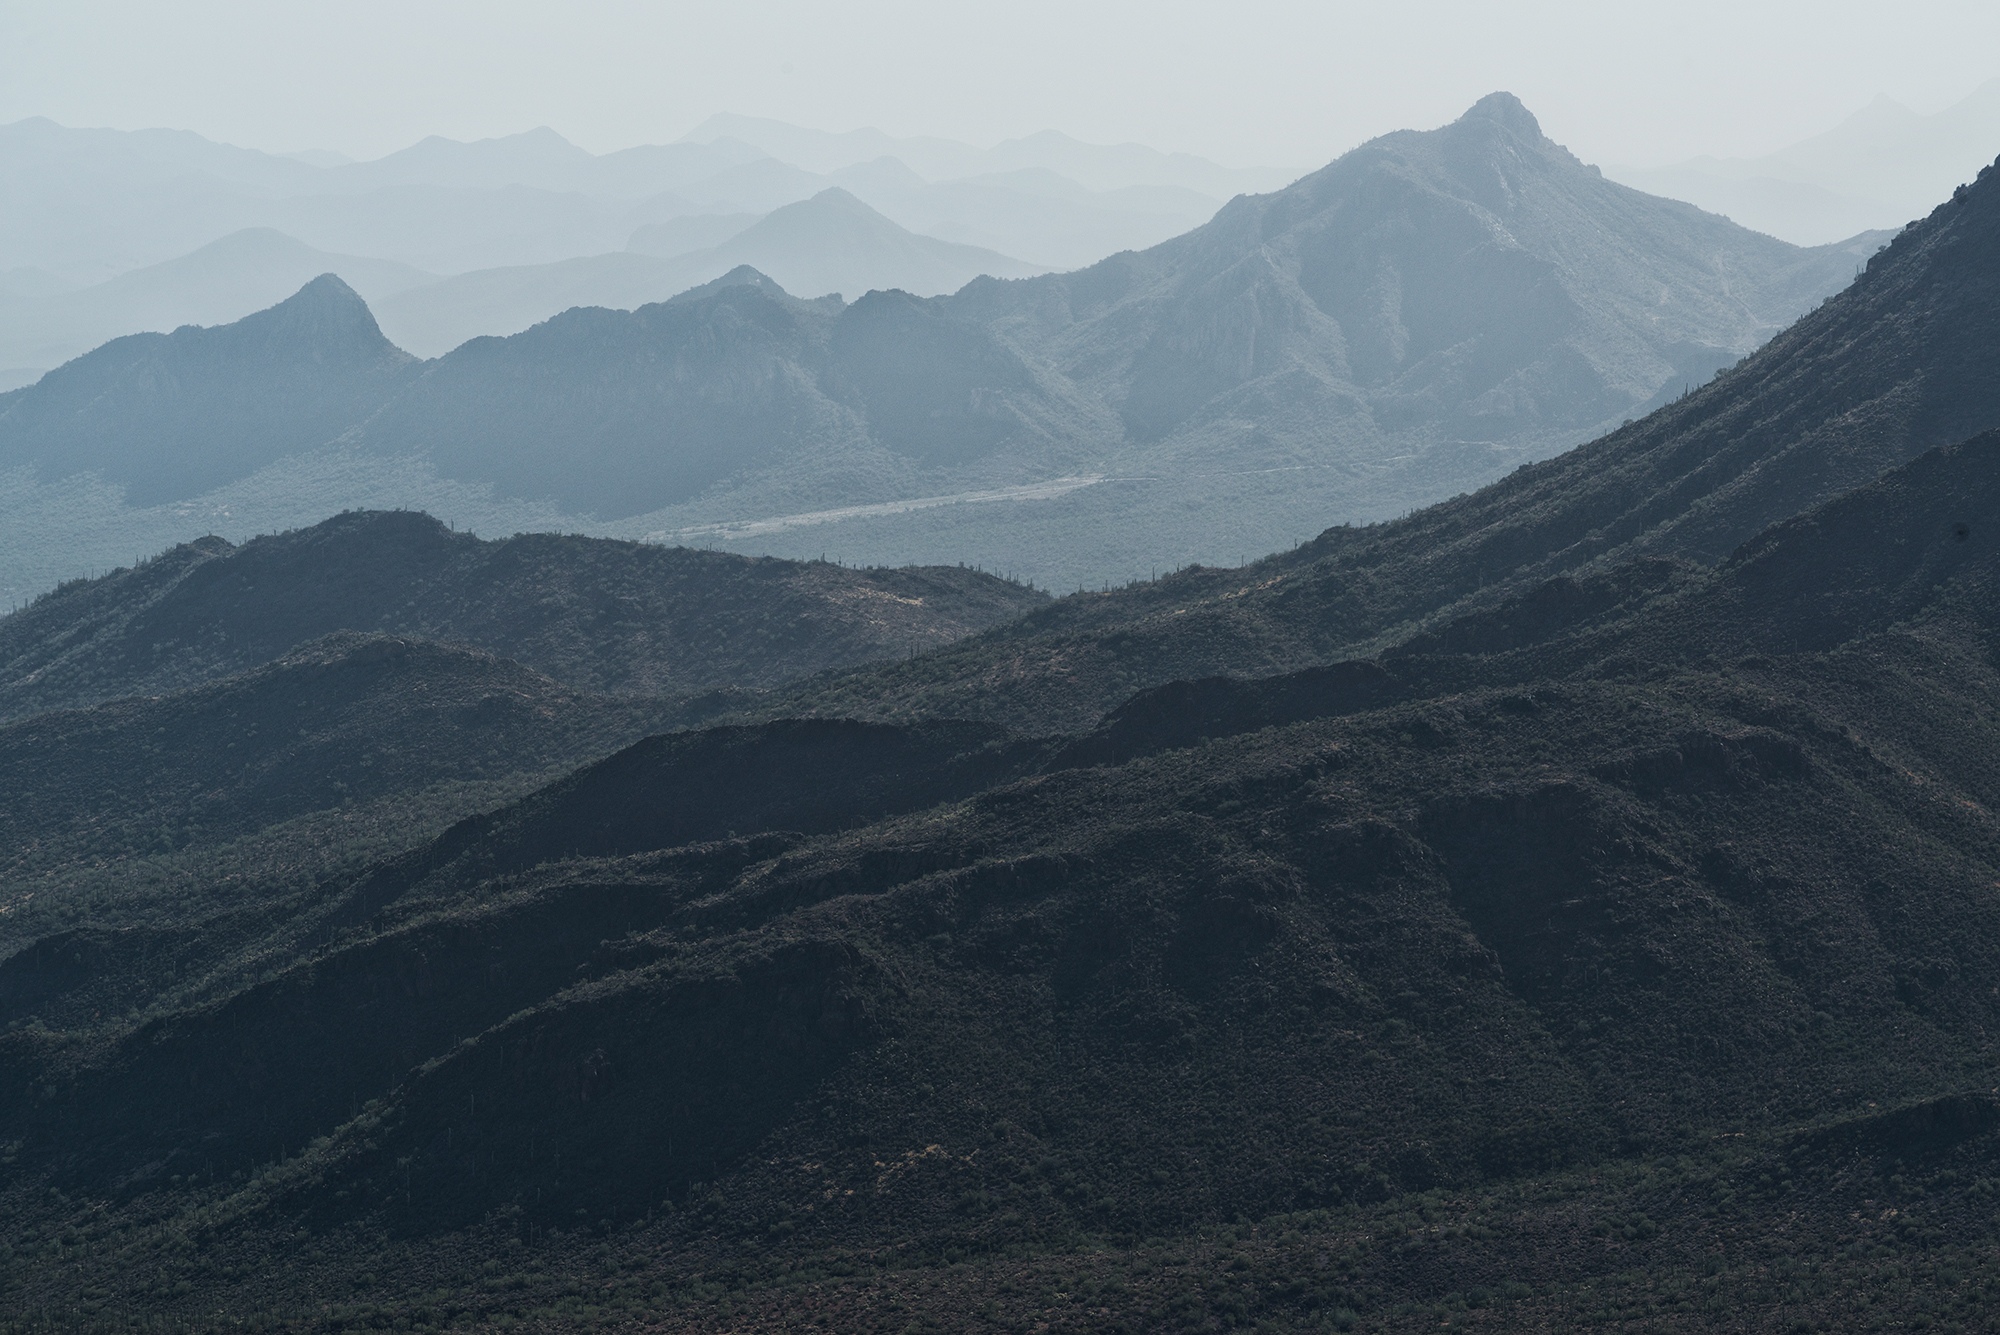 Hazy Horizons. From Ragged Top summit, Arizona, 2016